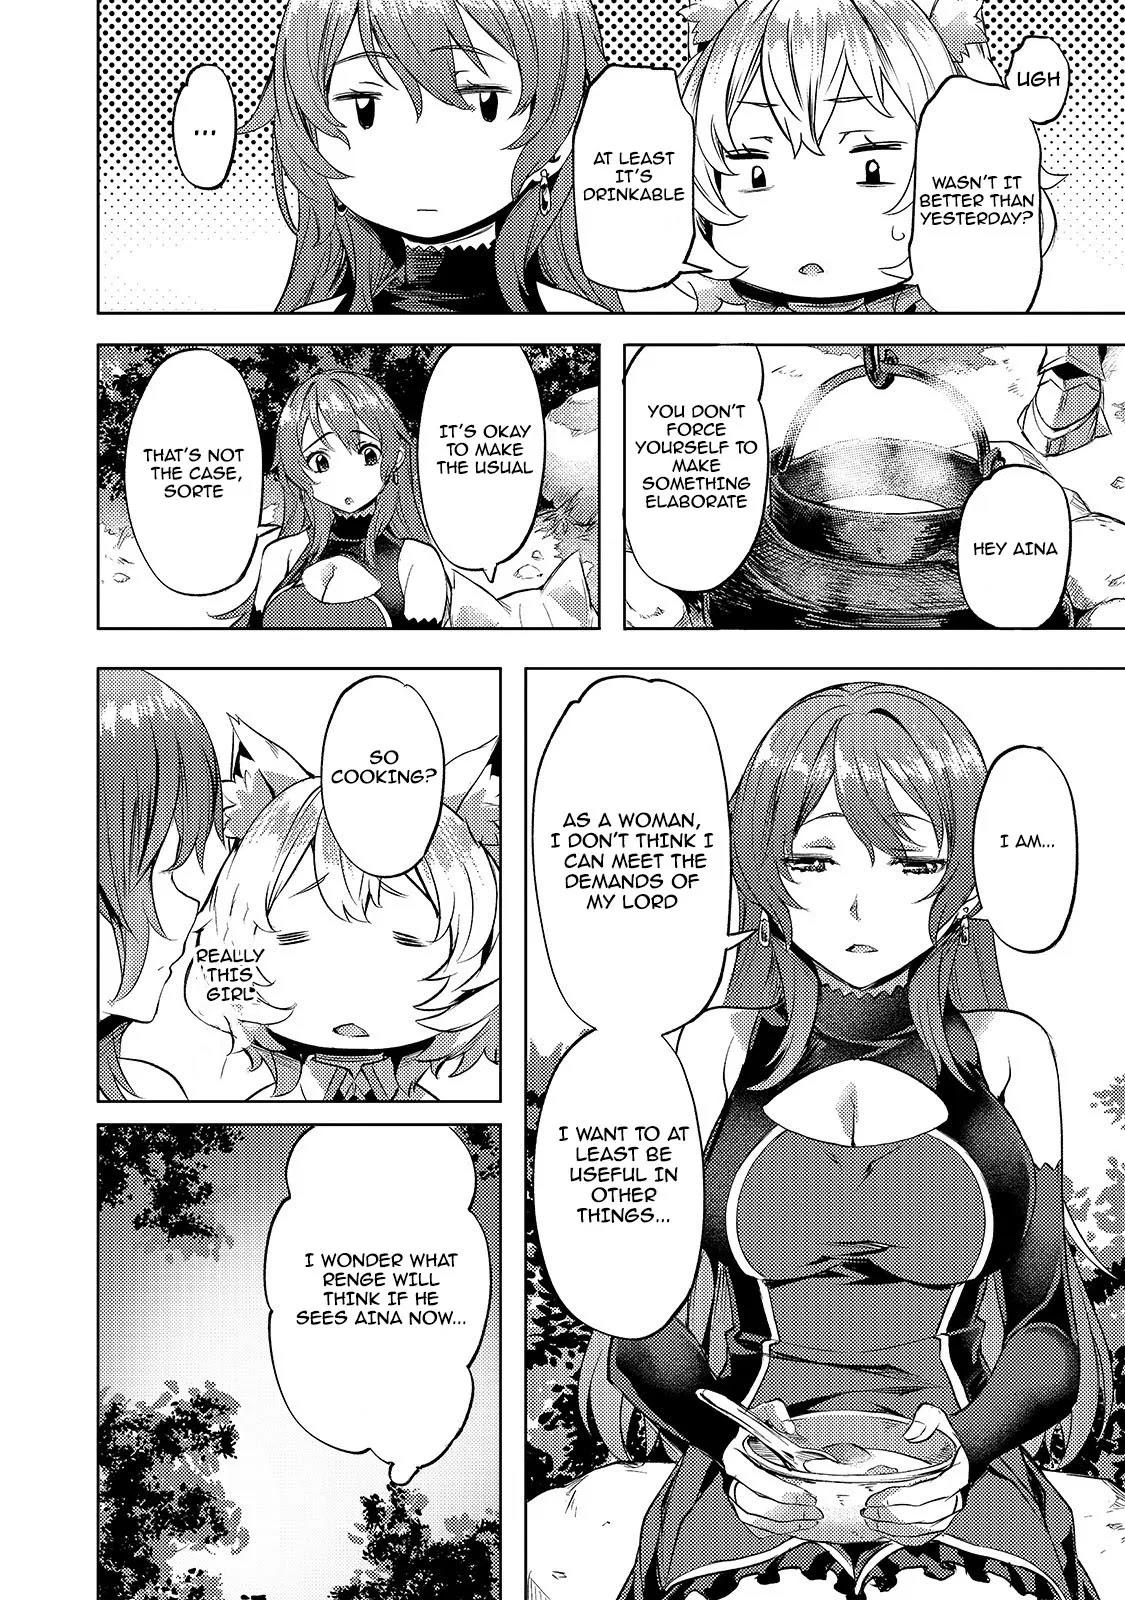 I Have A Slow Living In Different World (I Wish) Chapter 18 page 25 - Mangakakalots.com